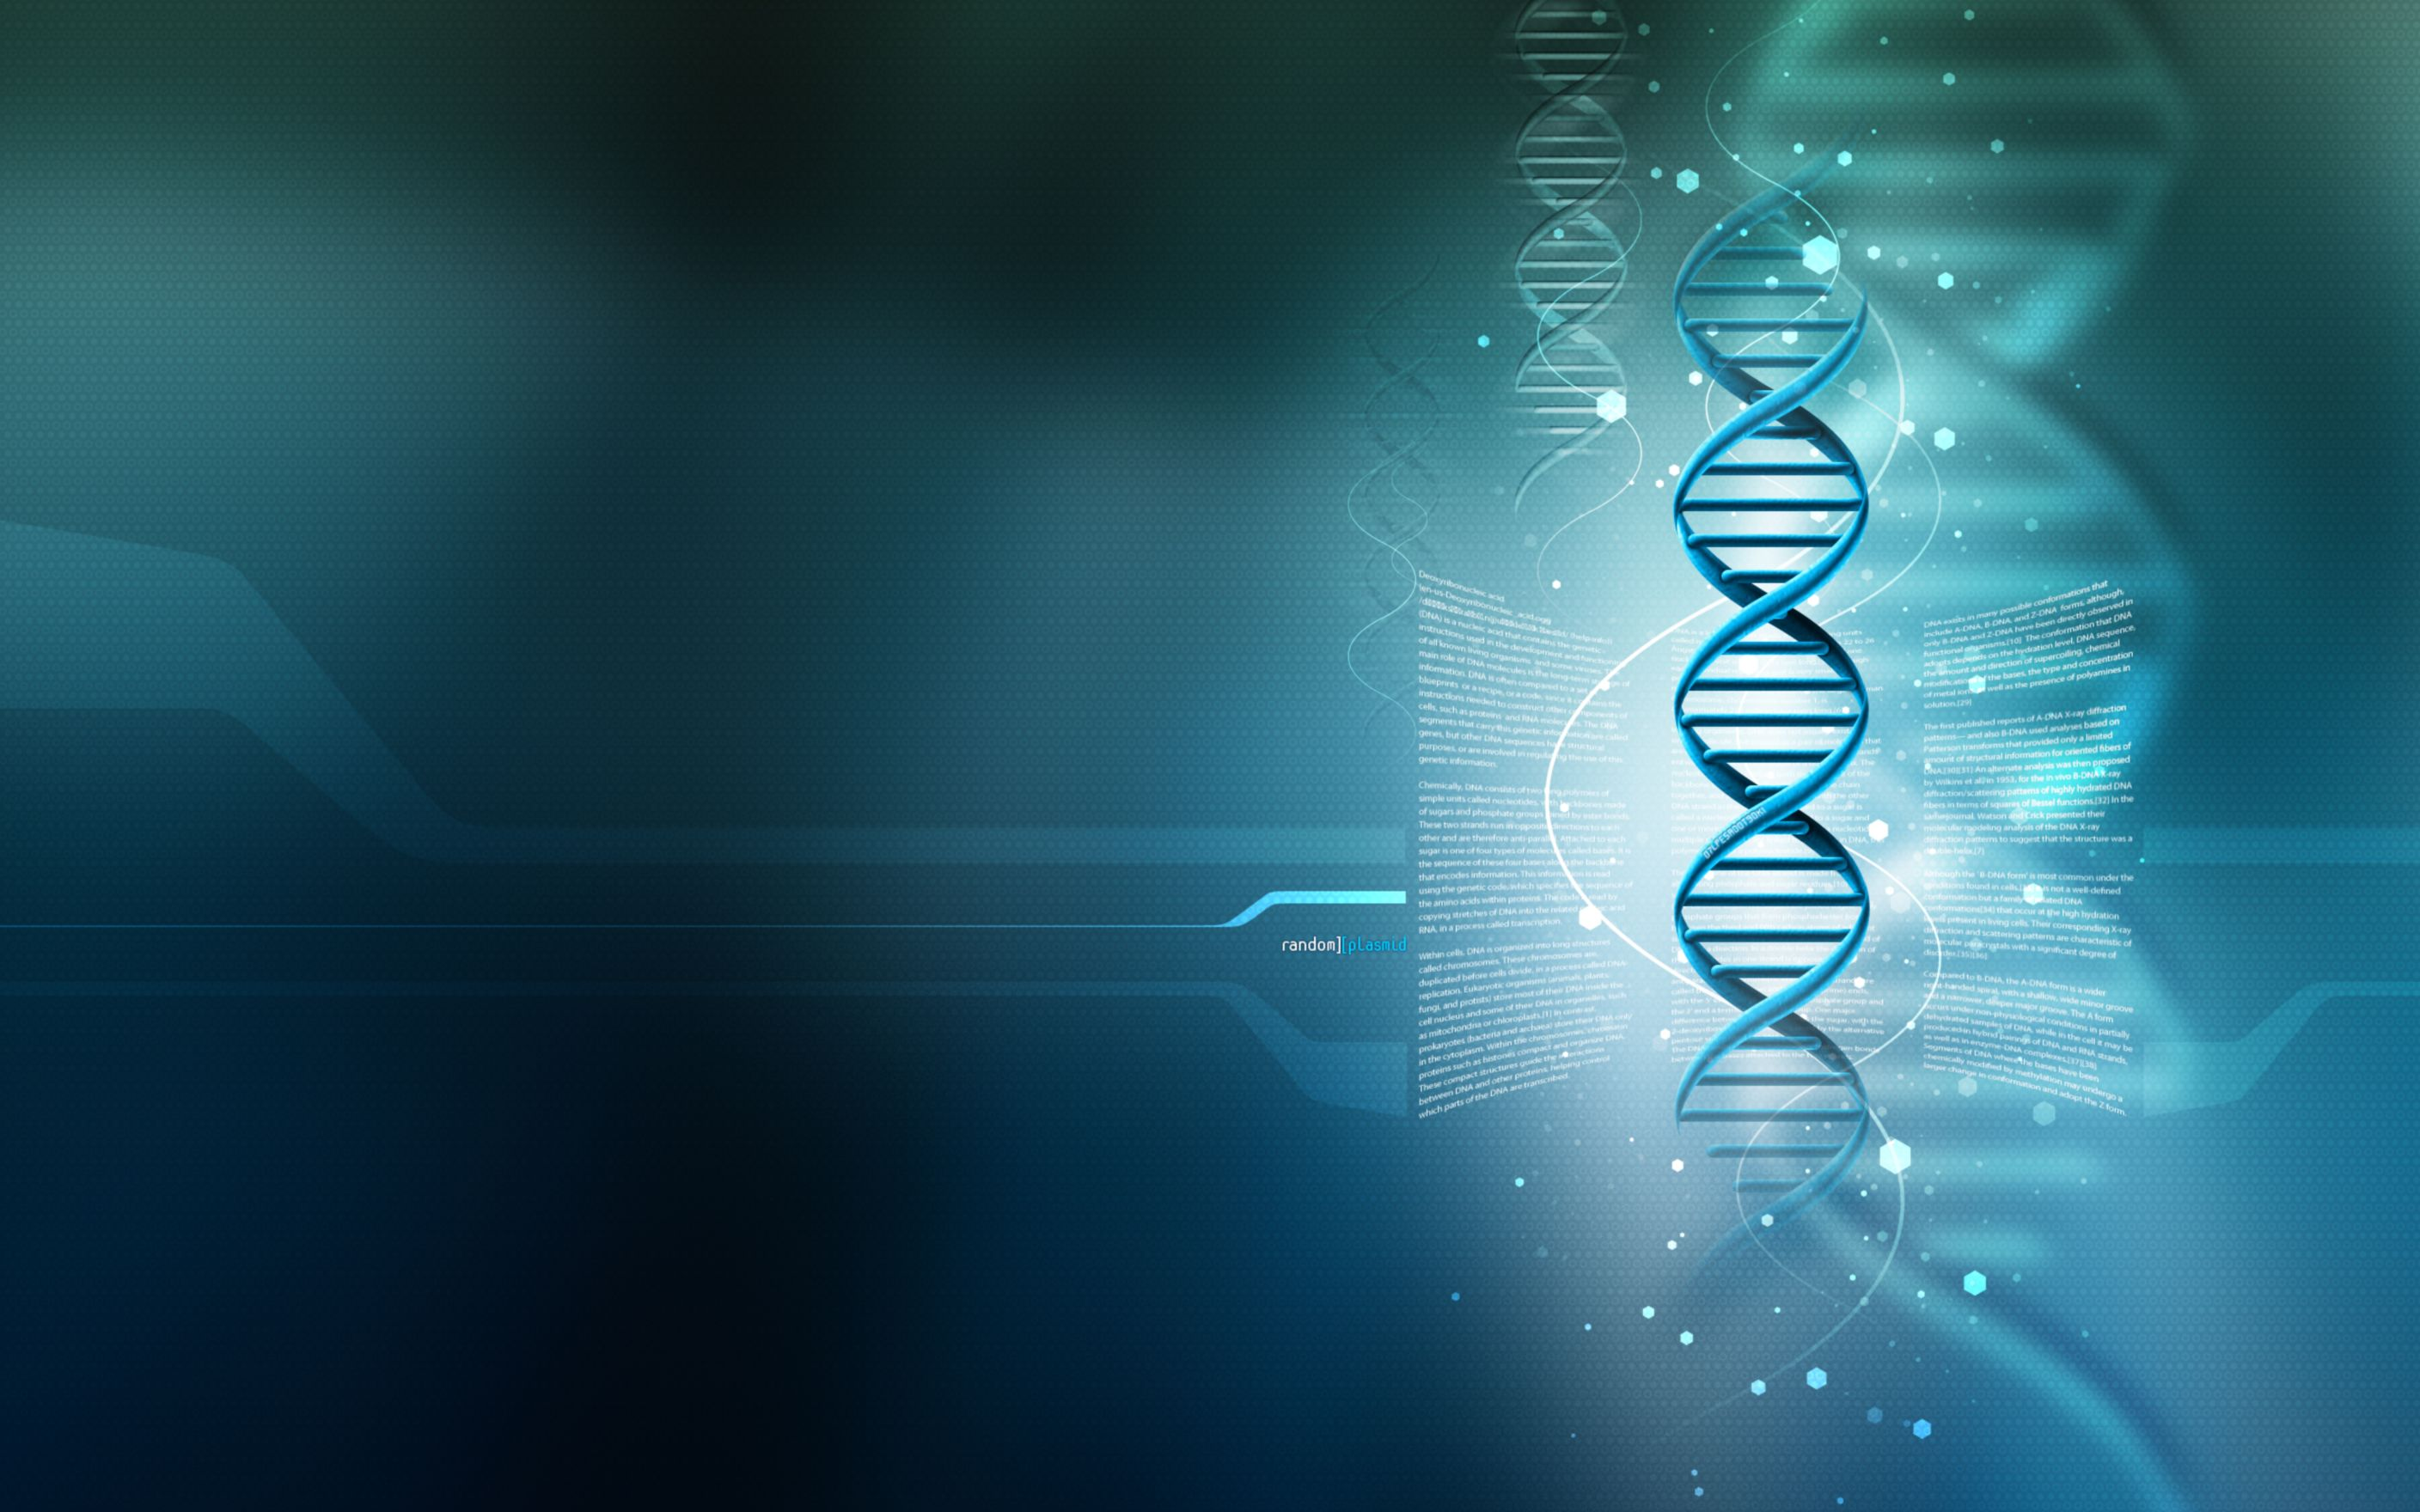 Download free HD 3D DNA Wide Wallpaper, image